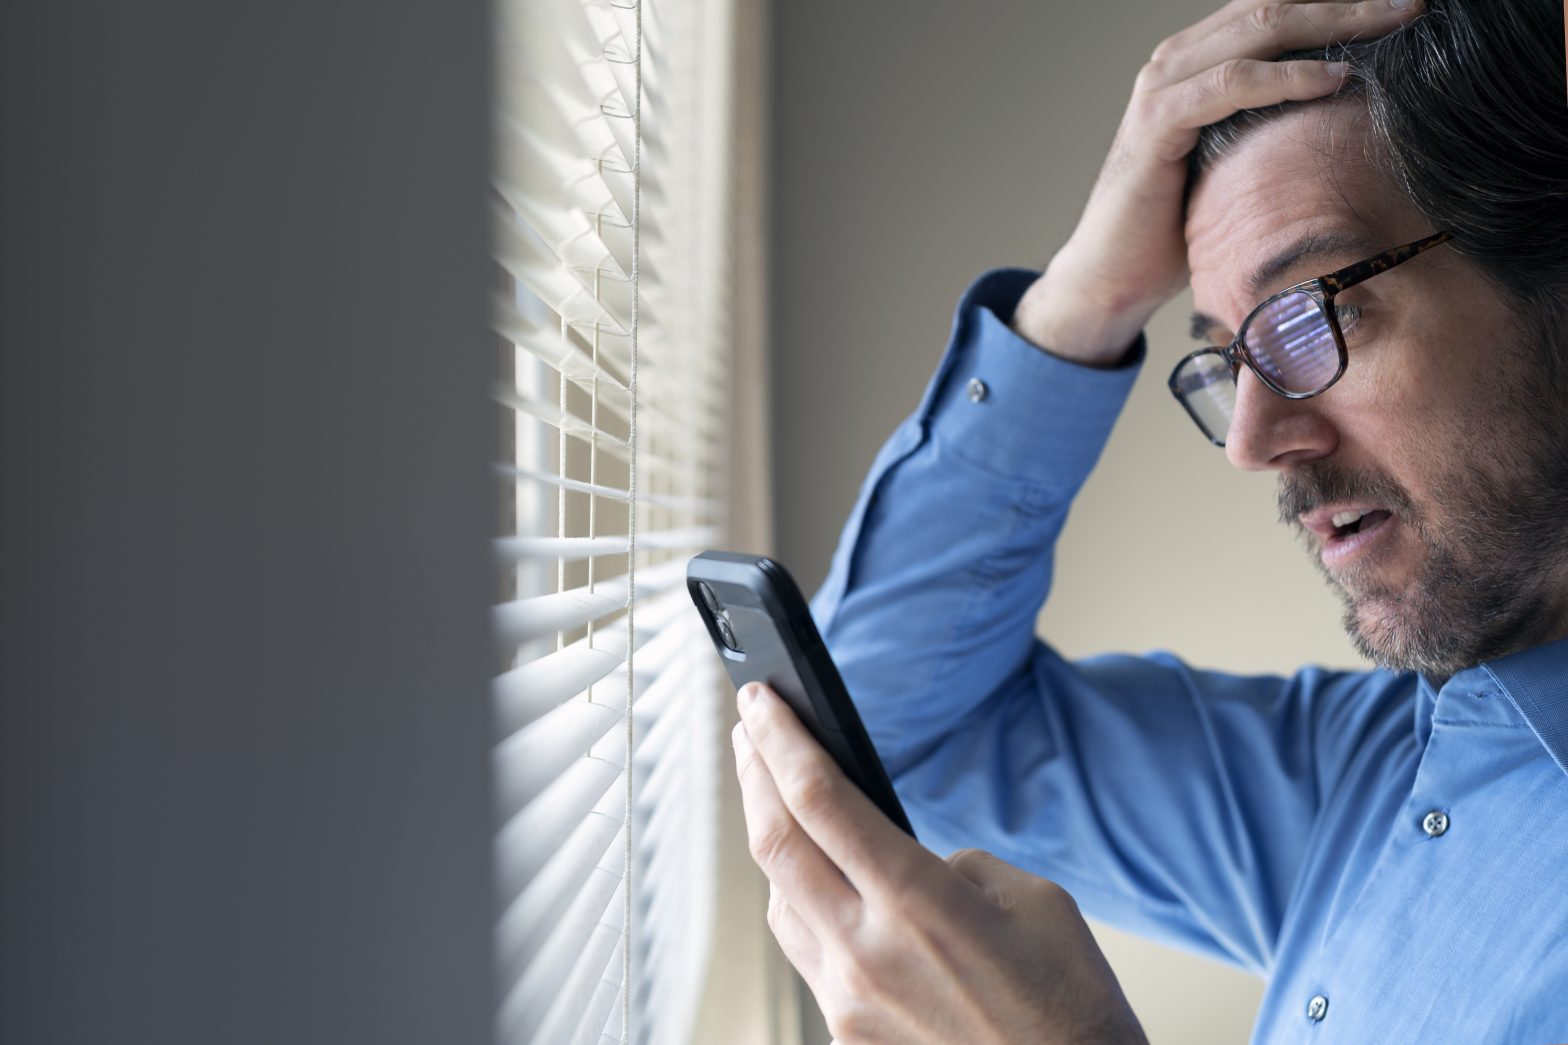 Man standing by window reacting to social media on his phone, when hurt in accident turn to Personal Injury Lawyer Virginia Beach.